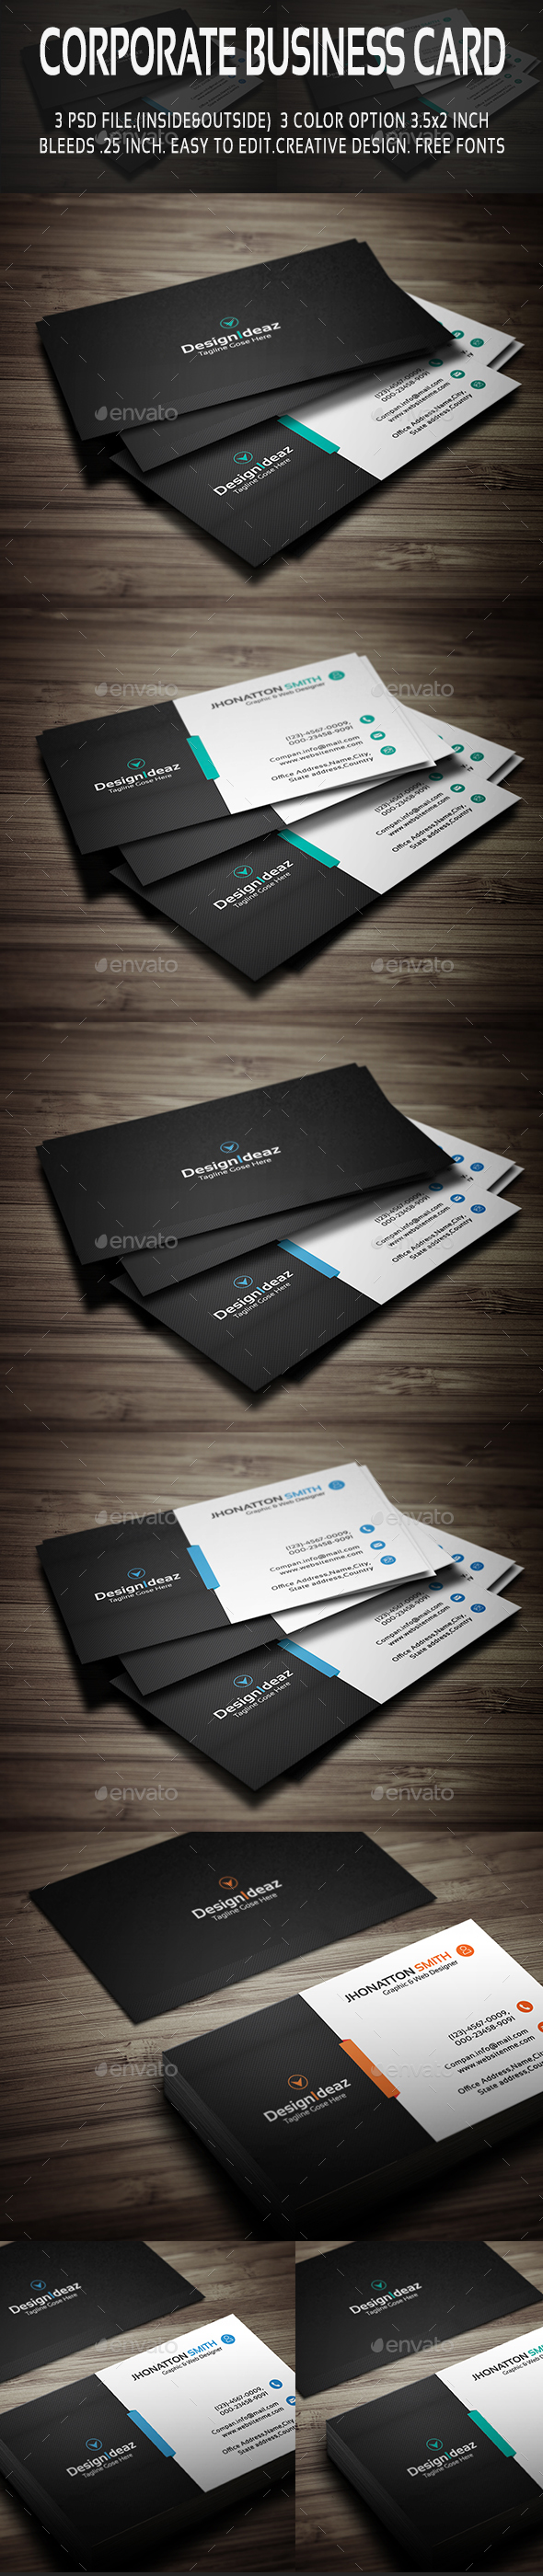 Corporate Business Card V01 - Corporate Business Cards